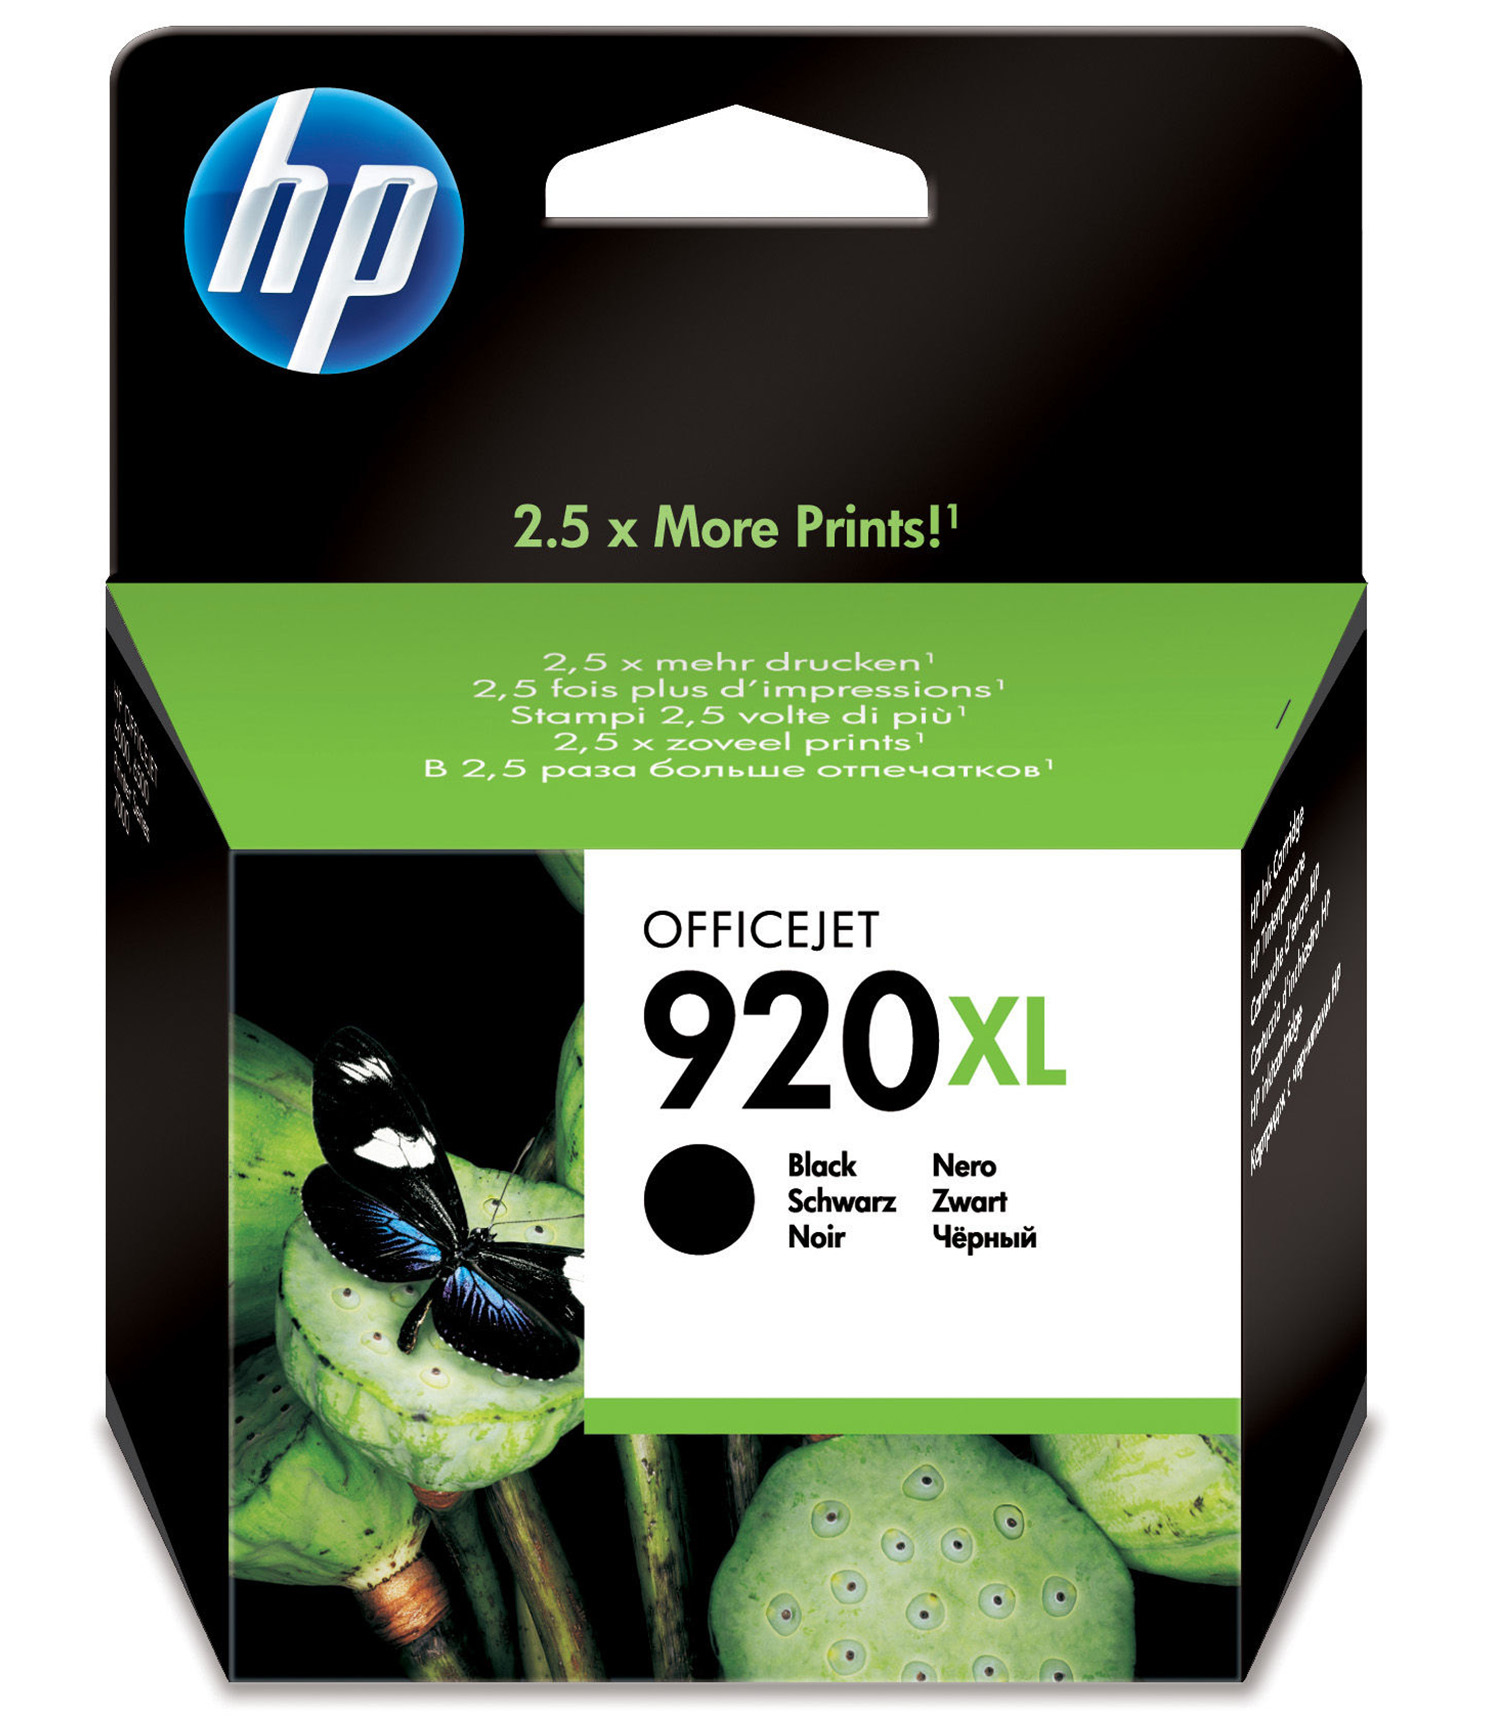 Cd975ae HP Hp 920xl Black Ink Cartridge - AD01